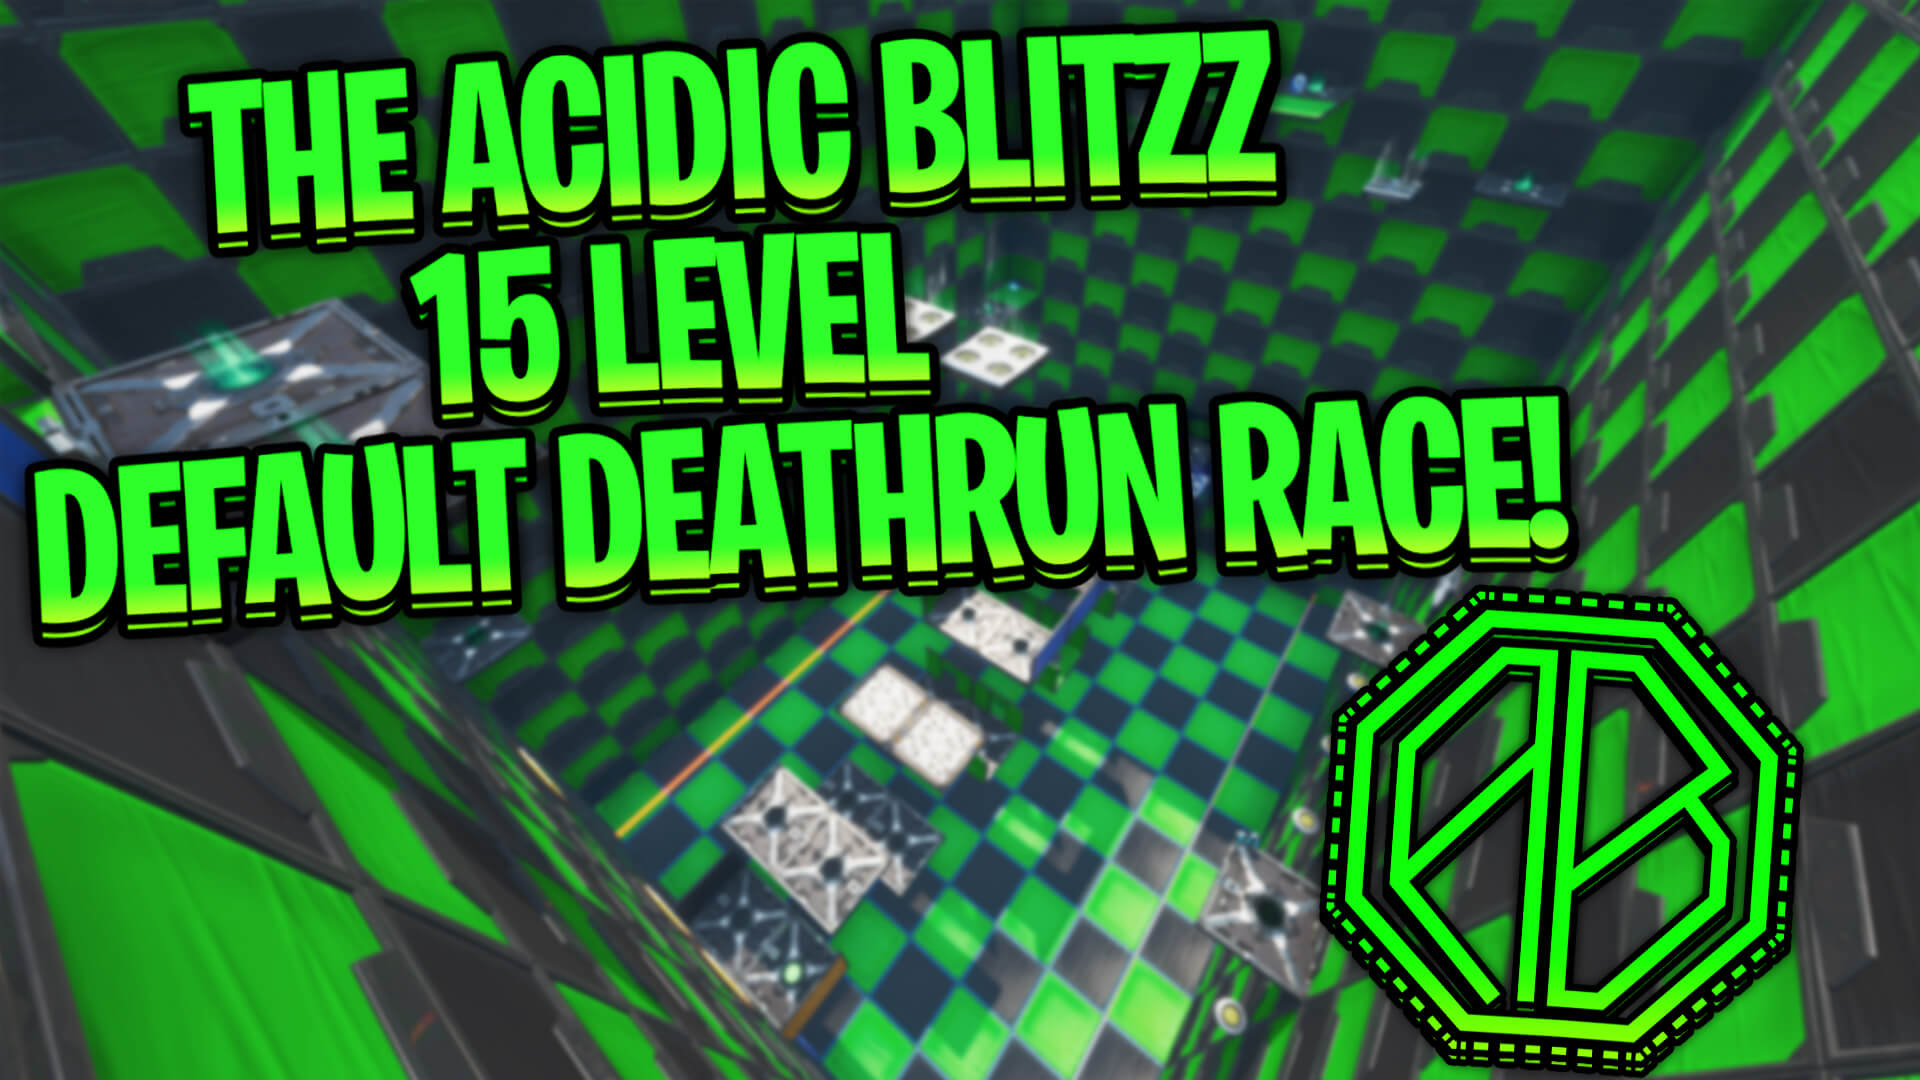 THE ACIDIC BLITZZ 15 LEVEL DEATHRUN RACE